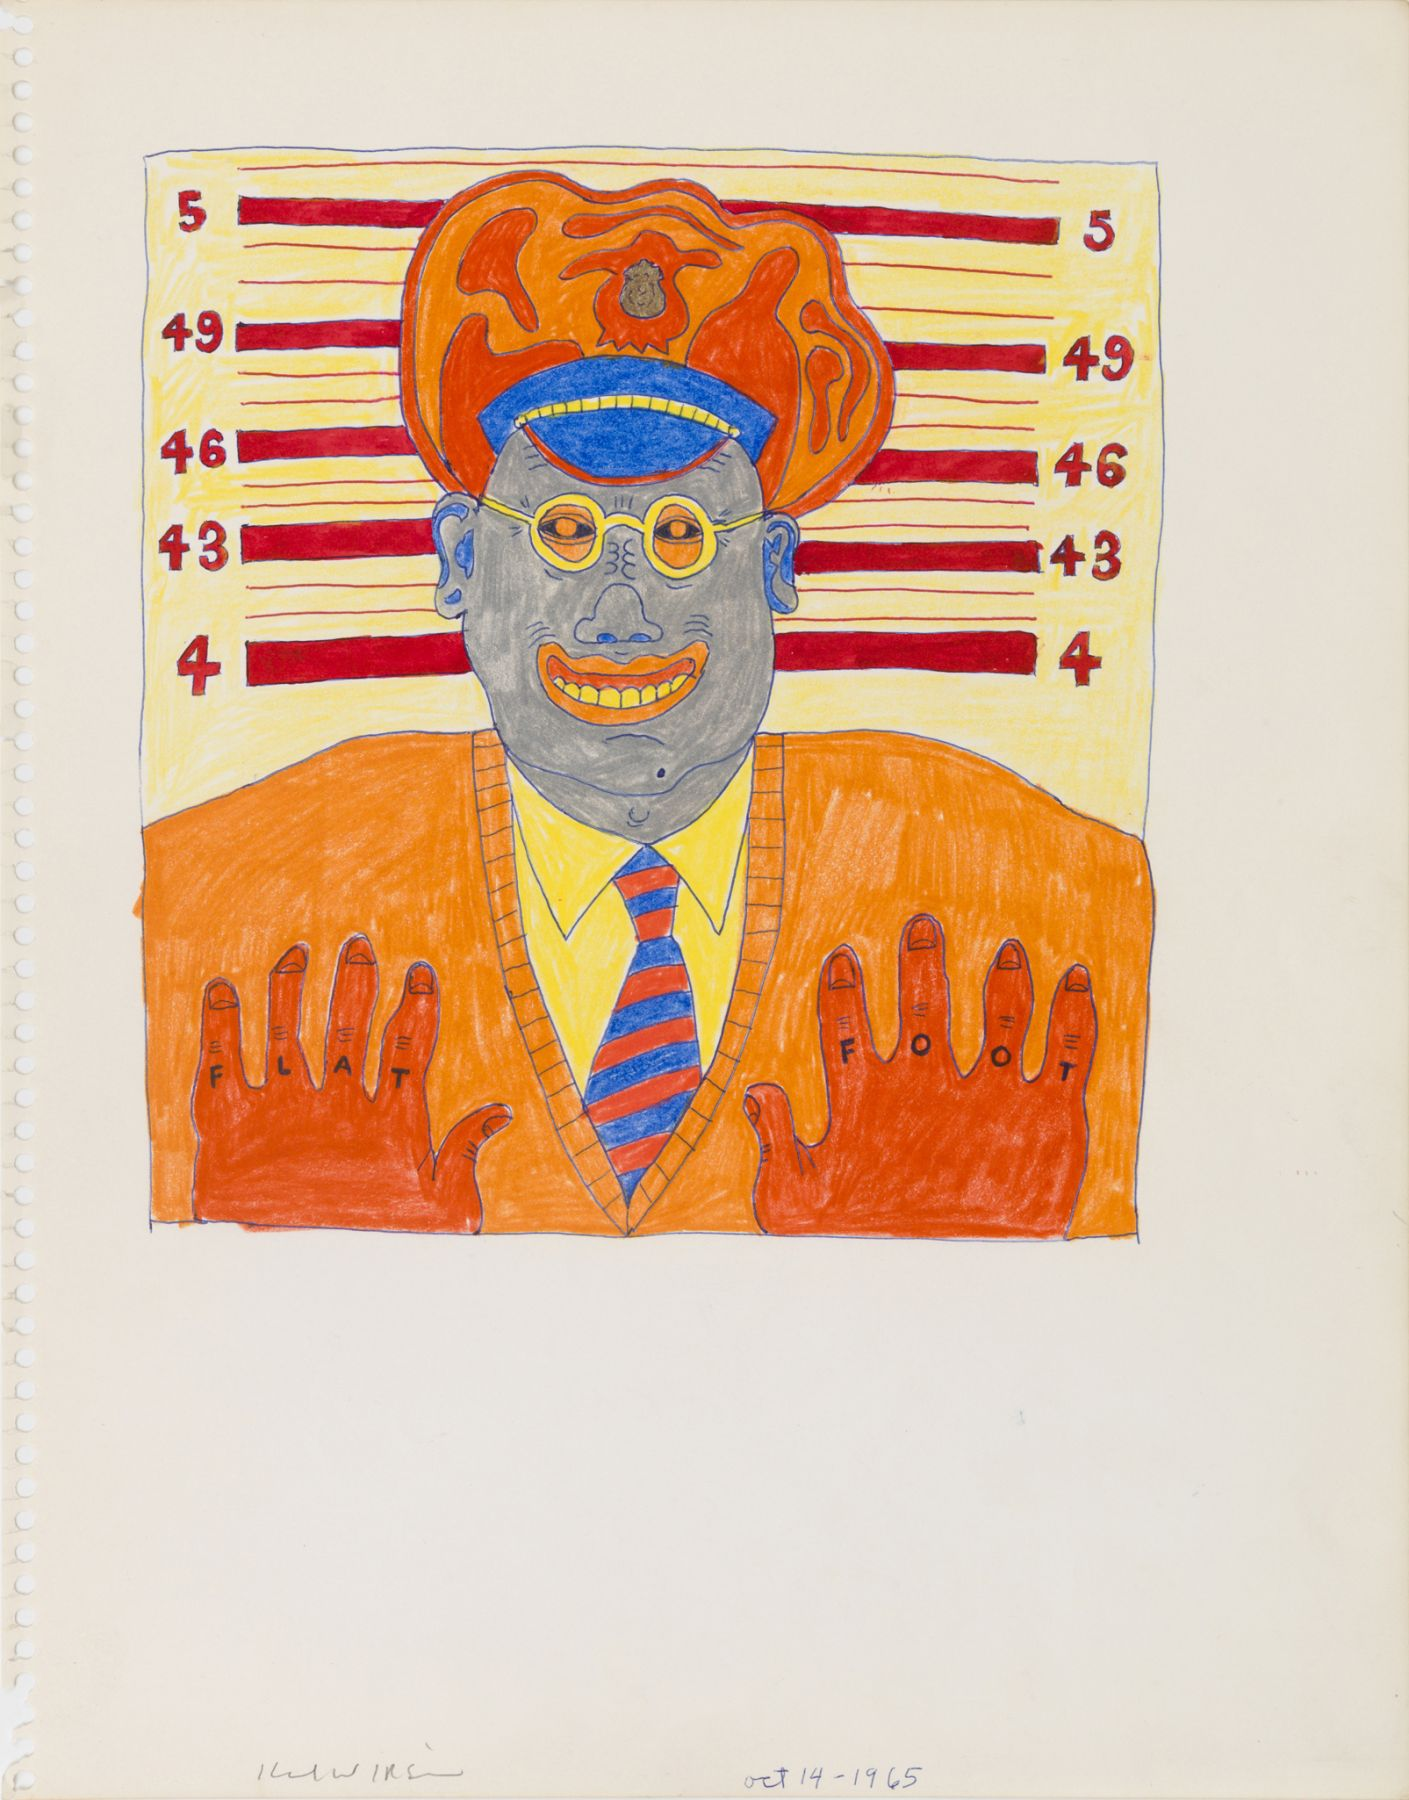 Untitled (Study for Flat Foot), 1968, Ink and color pencil on paper